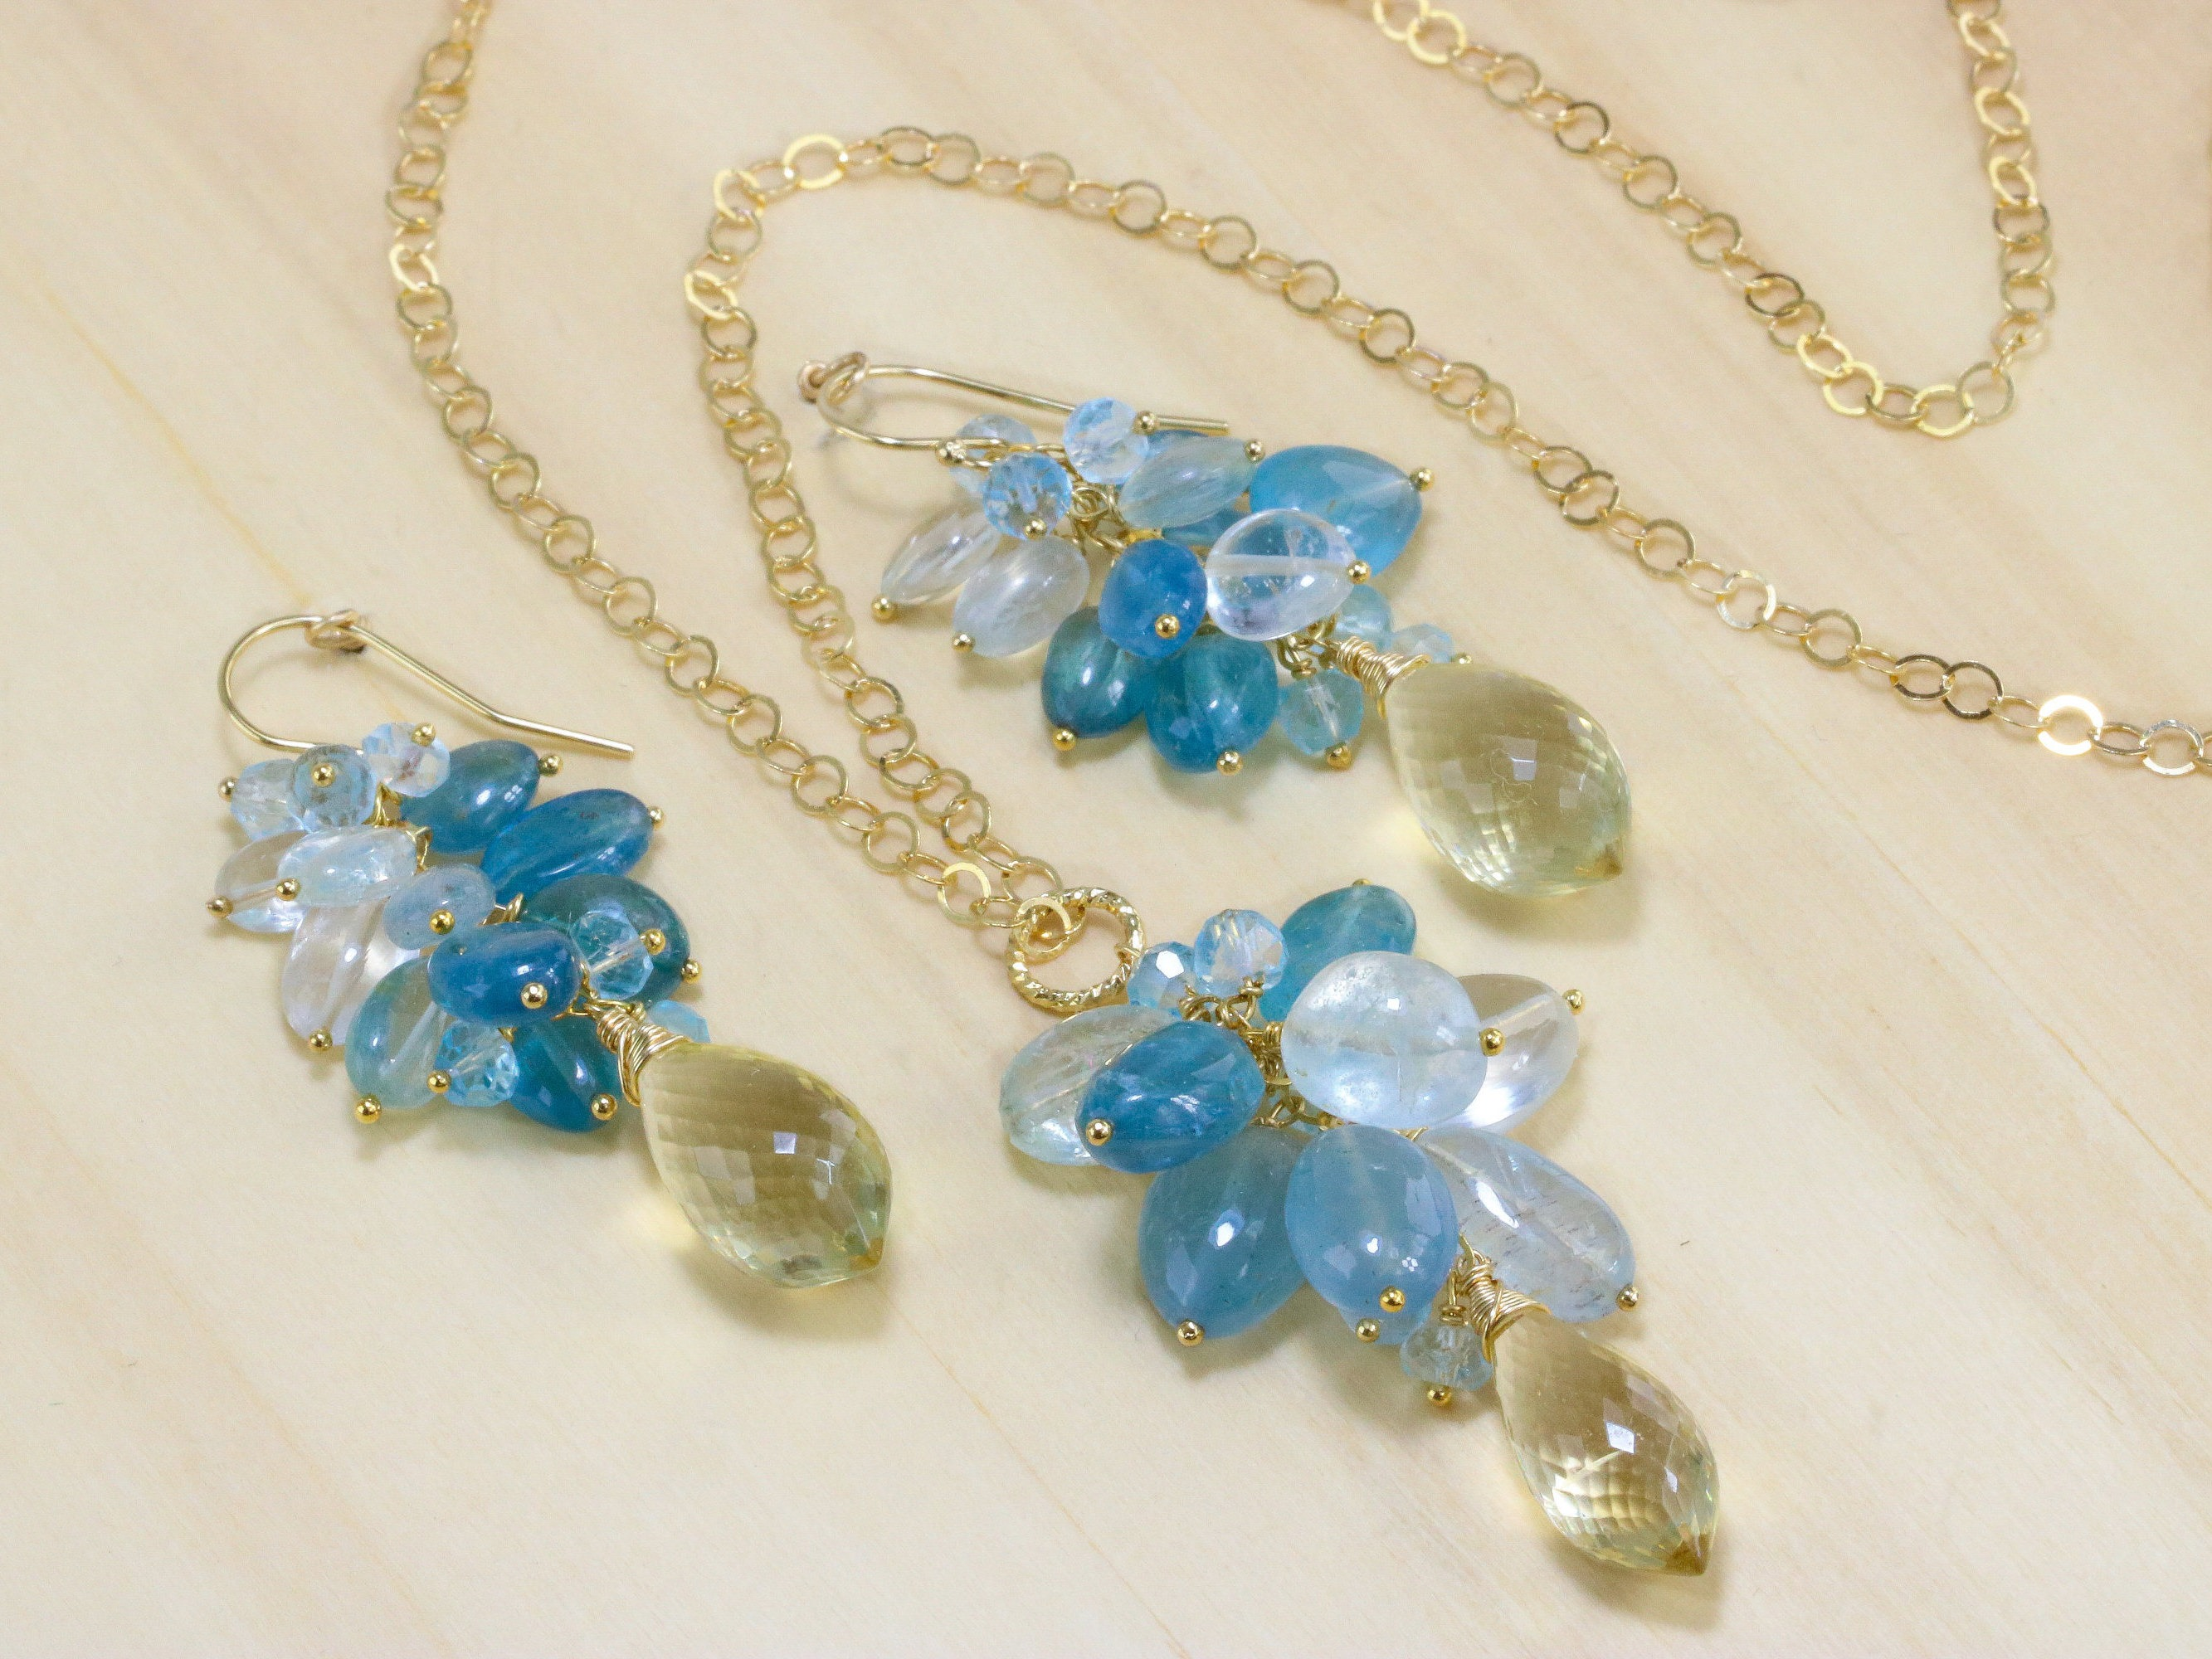 Santa maria blue aquamarine earrings and necklace with for Santa maria jewelry company